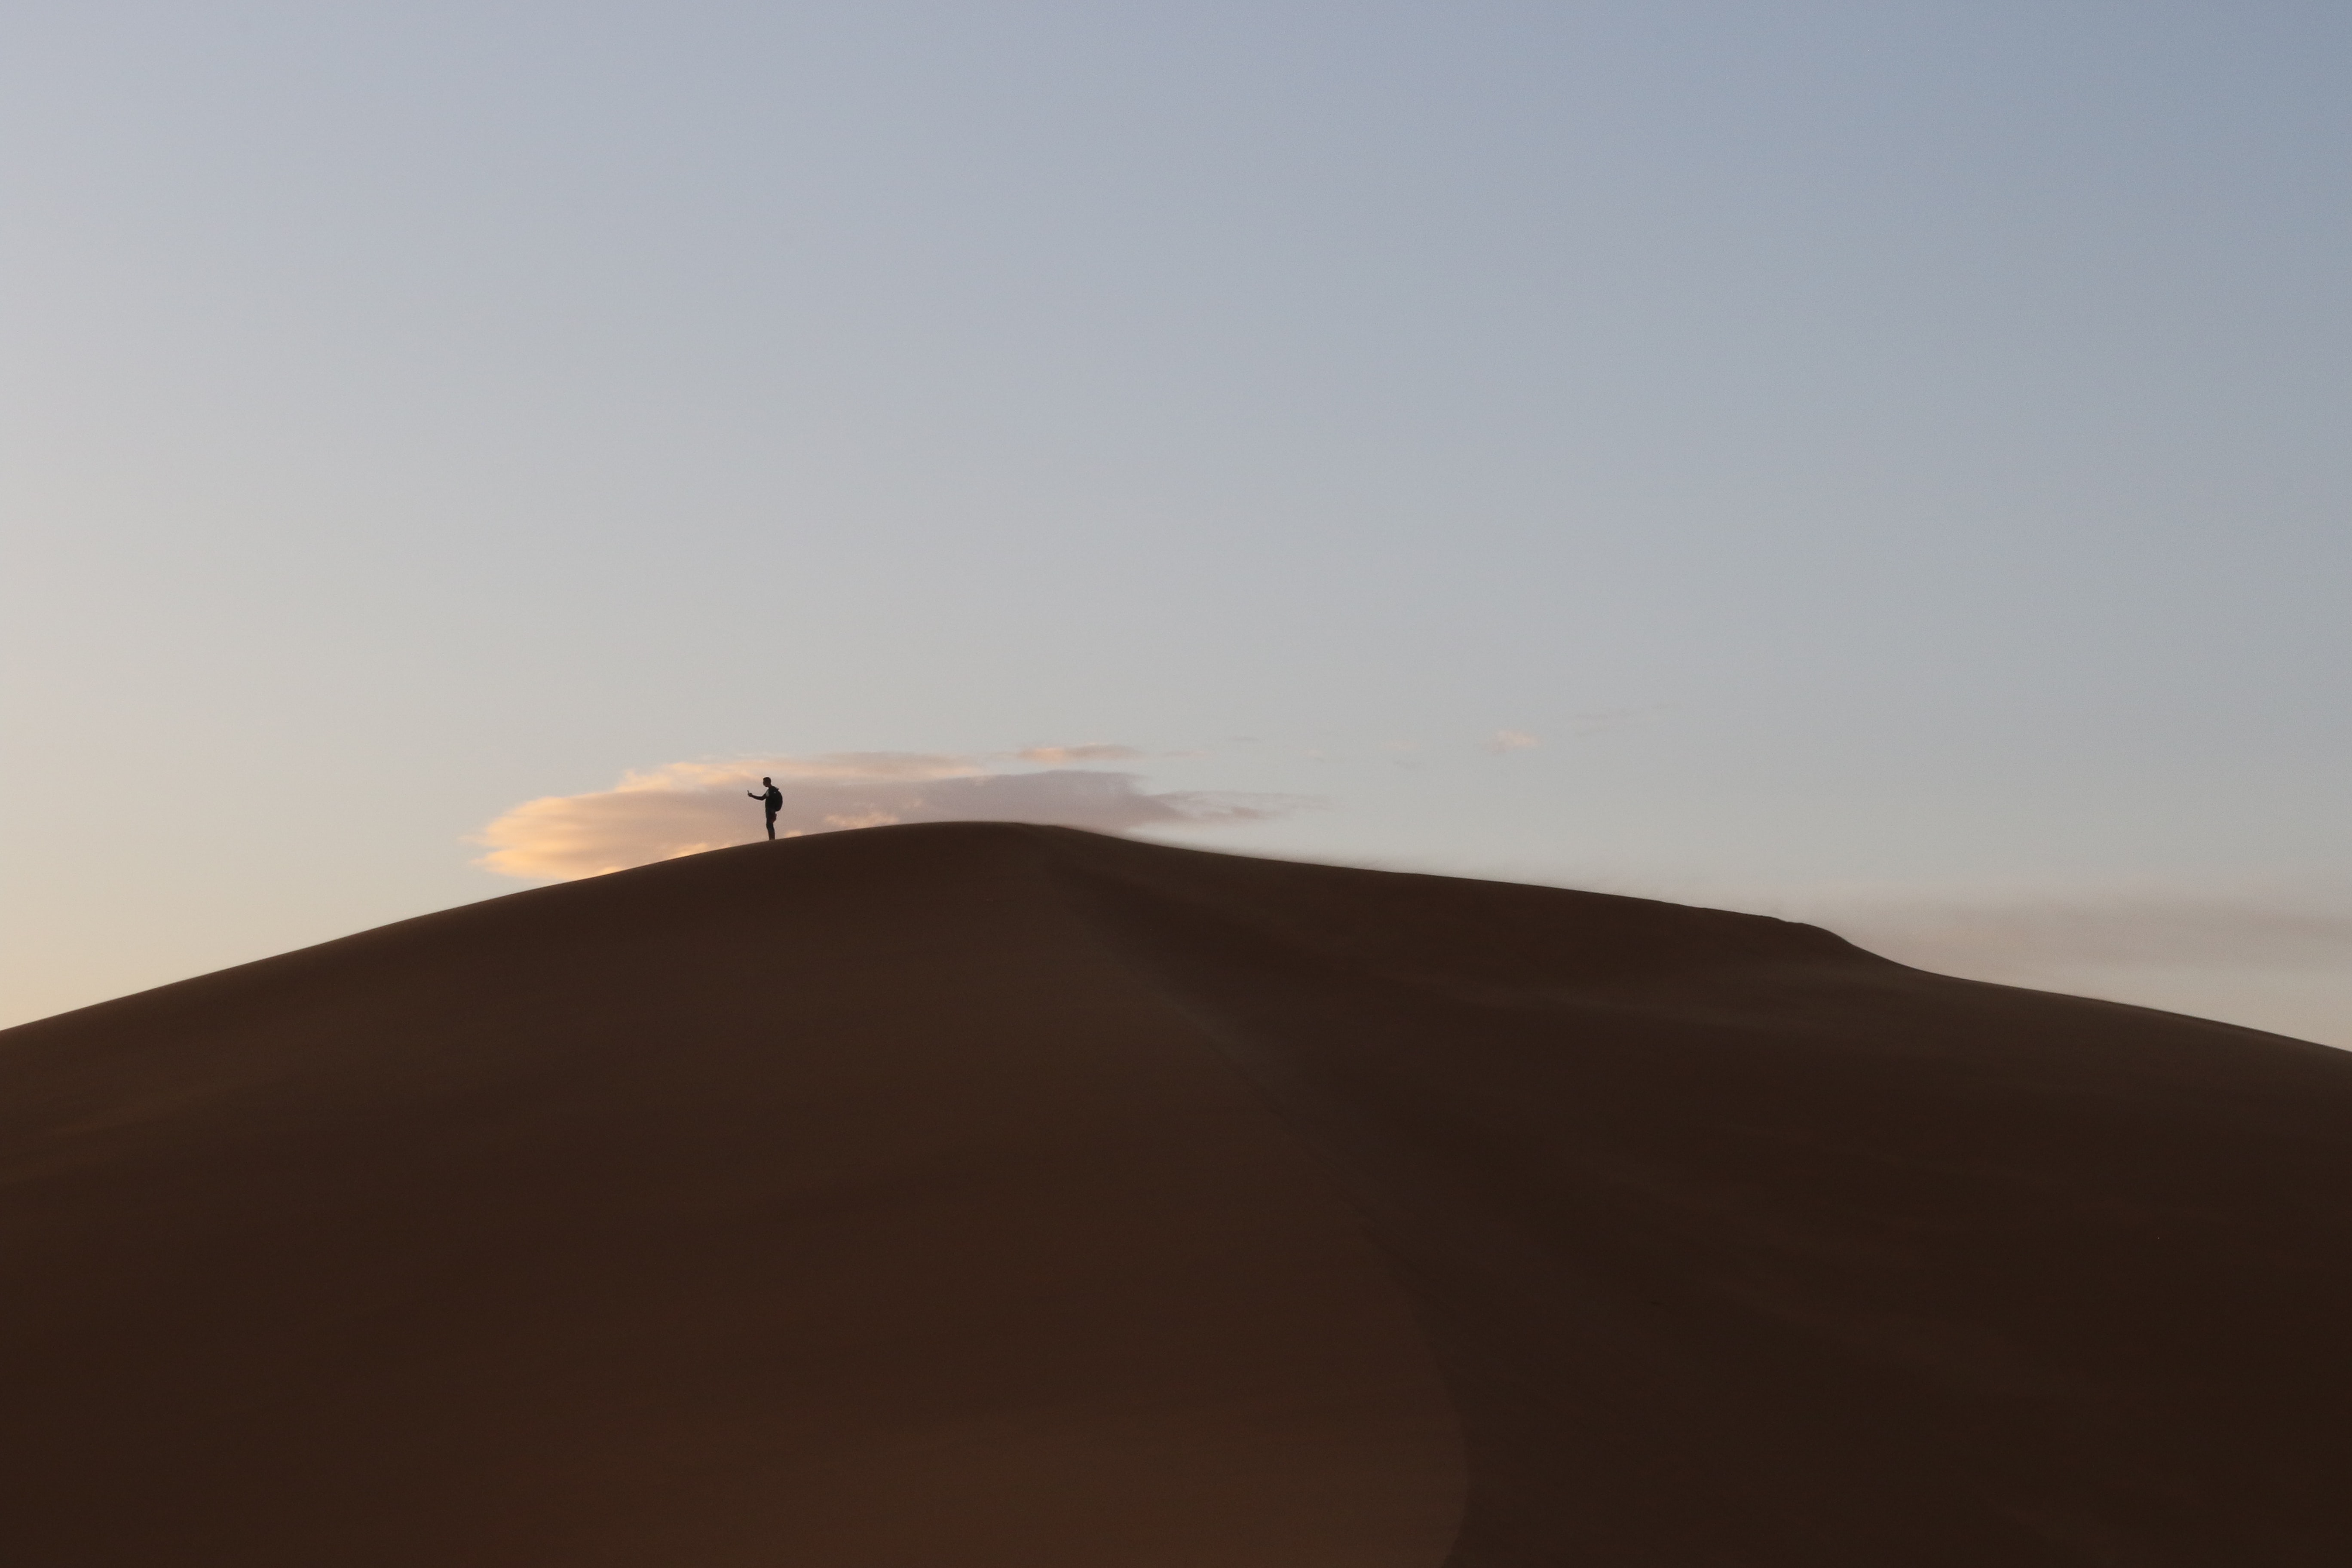 person standing on brown sand mountain